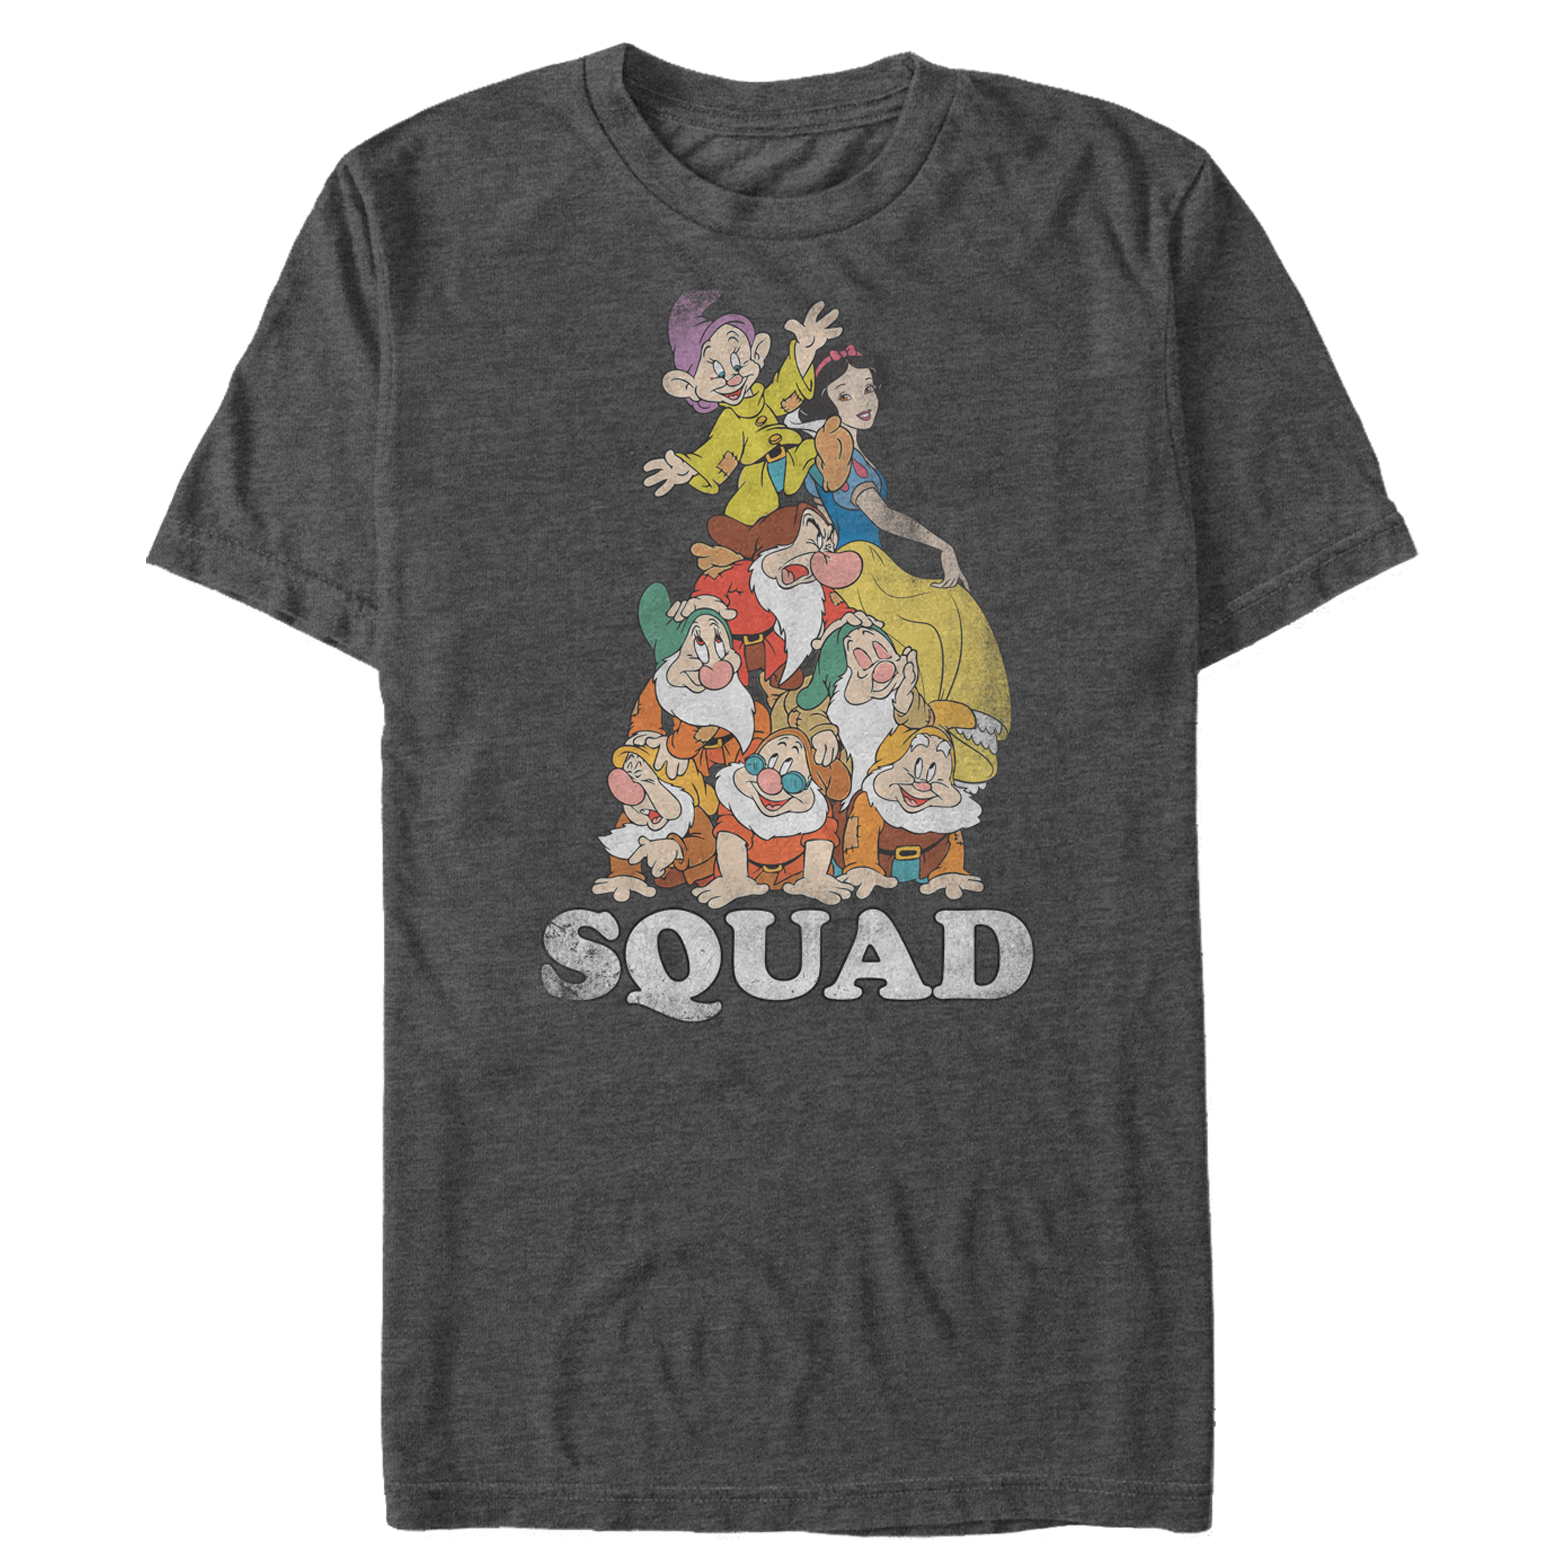 Snow White and the Seven Dwarves Men's Squad T-Shirt